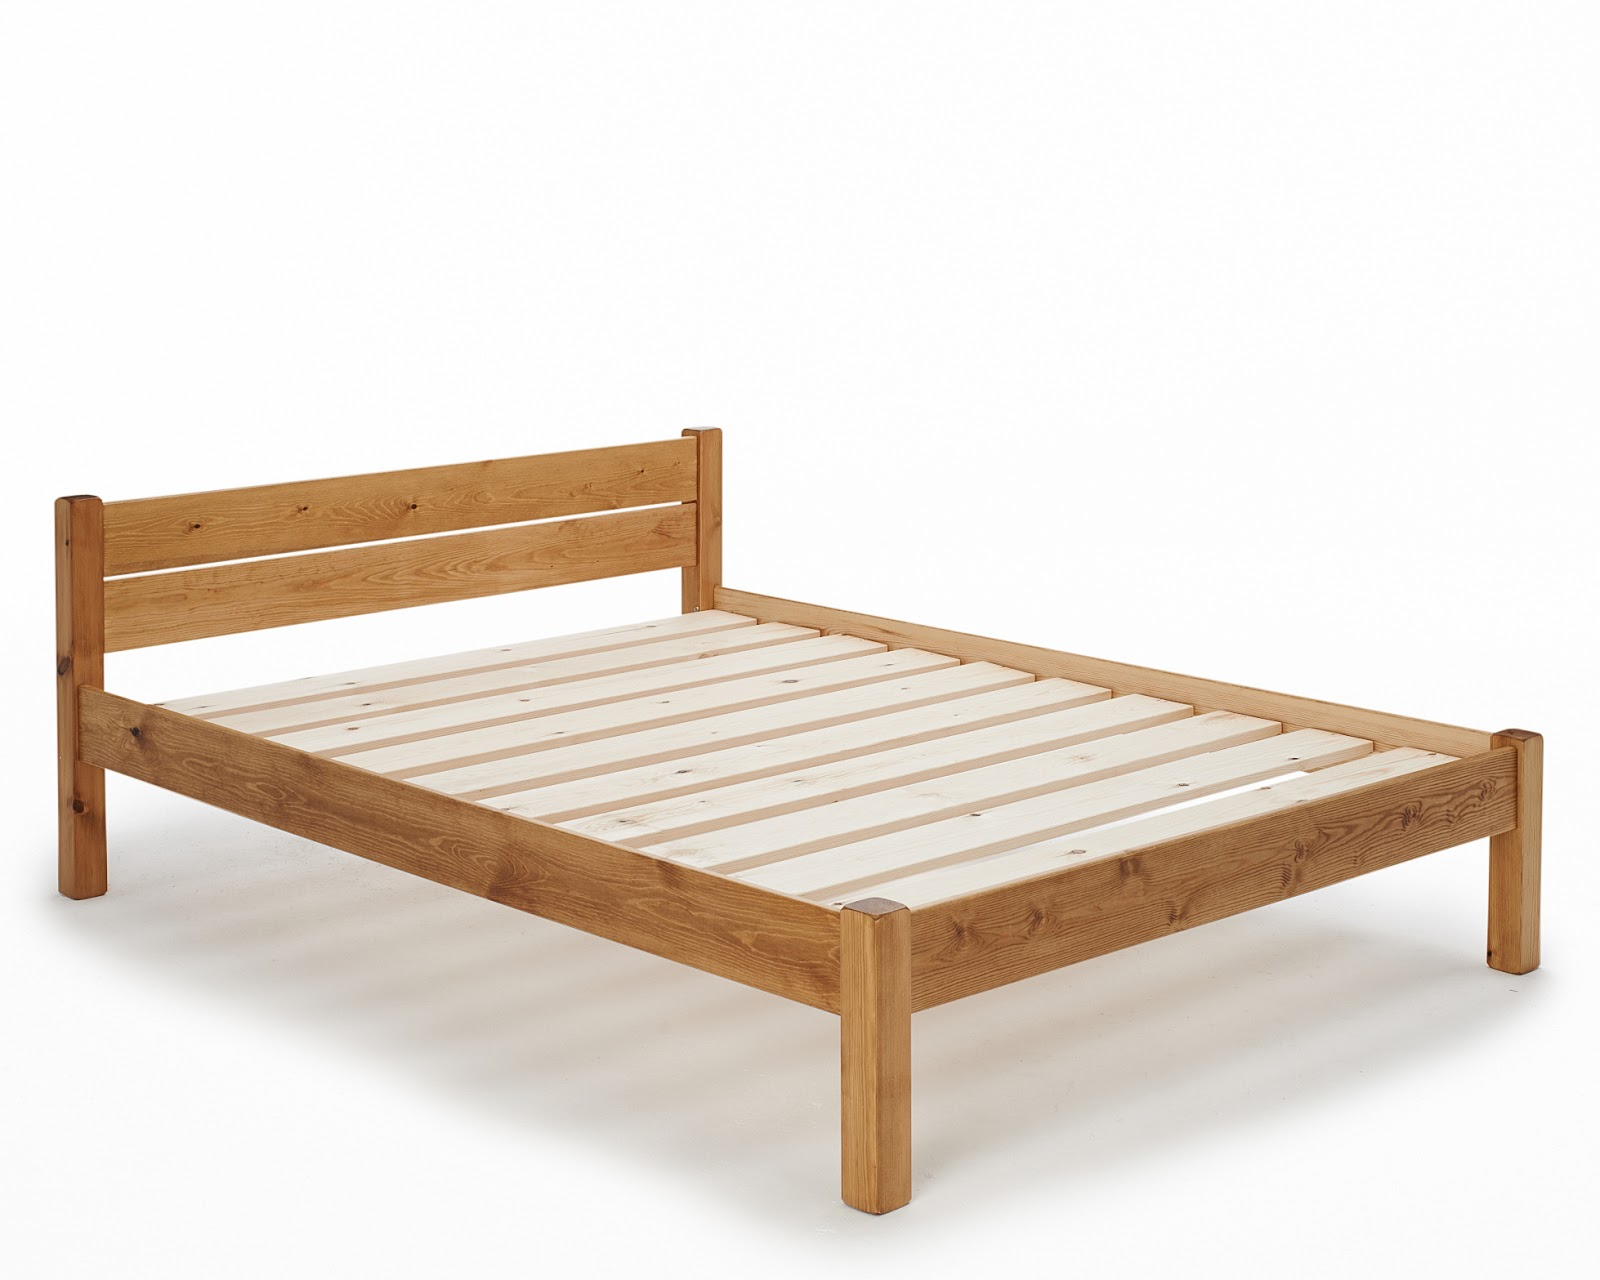 Bed Frame Zen Bedrooms Official Blog Information About Top Quality